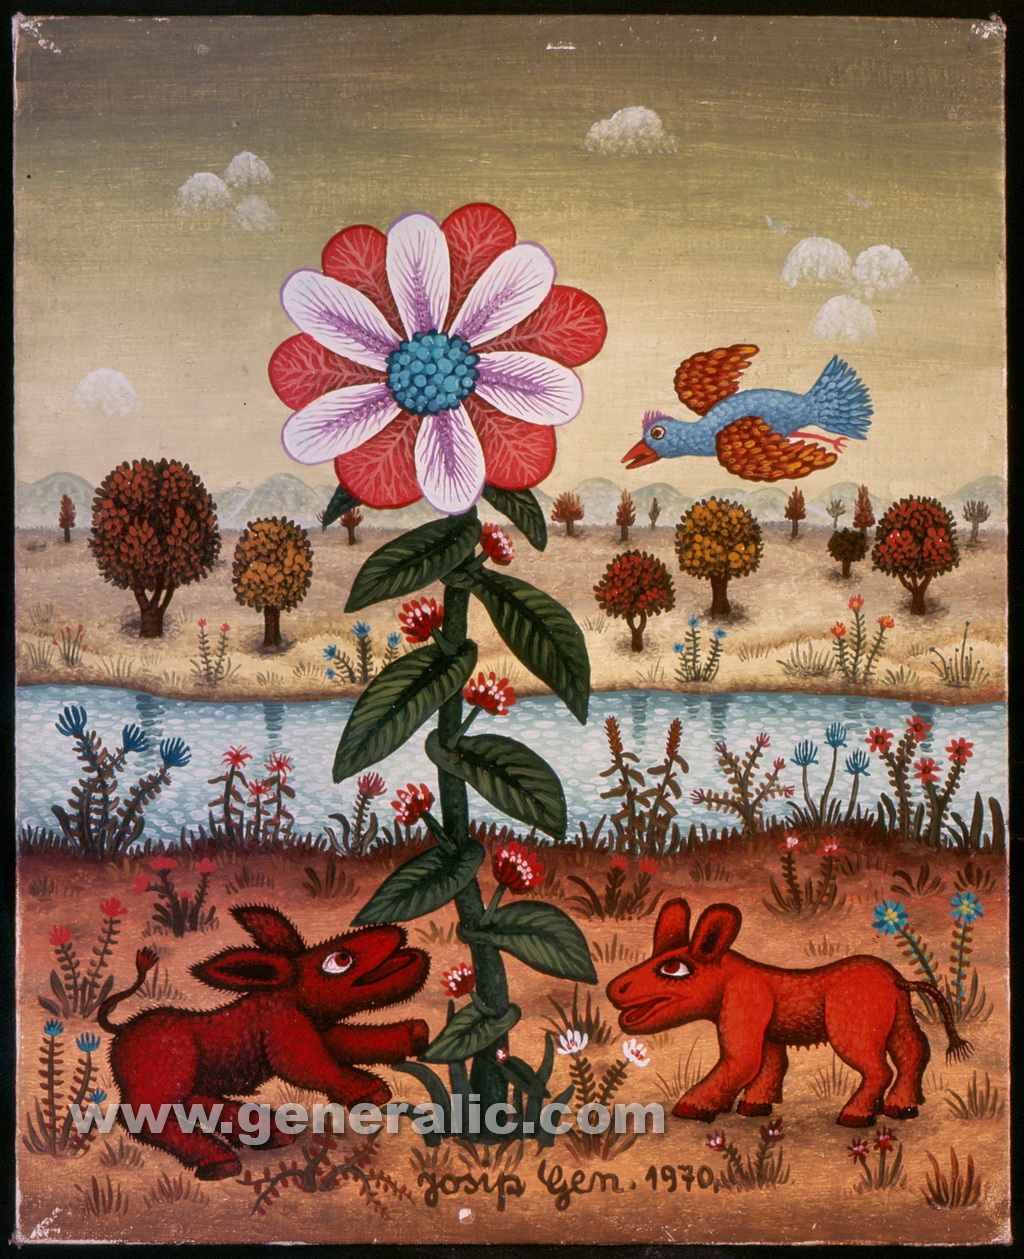 Josip Generalic, 1970, Two animals and a flower, oil on canvas